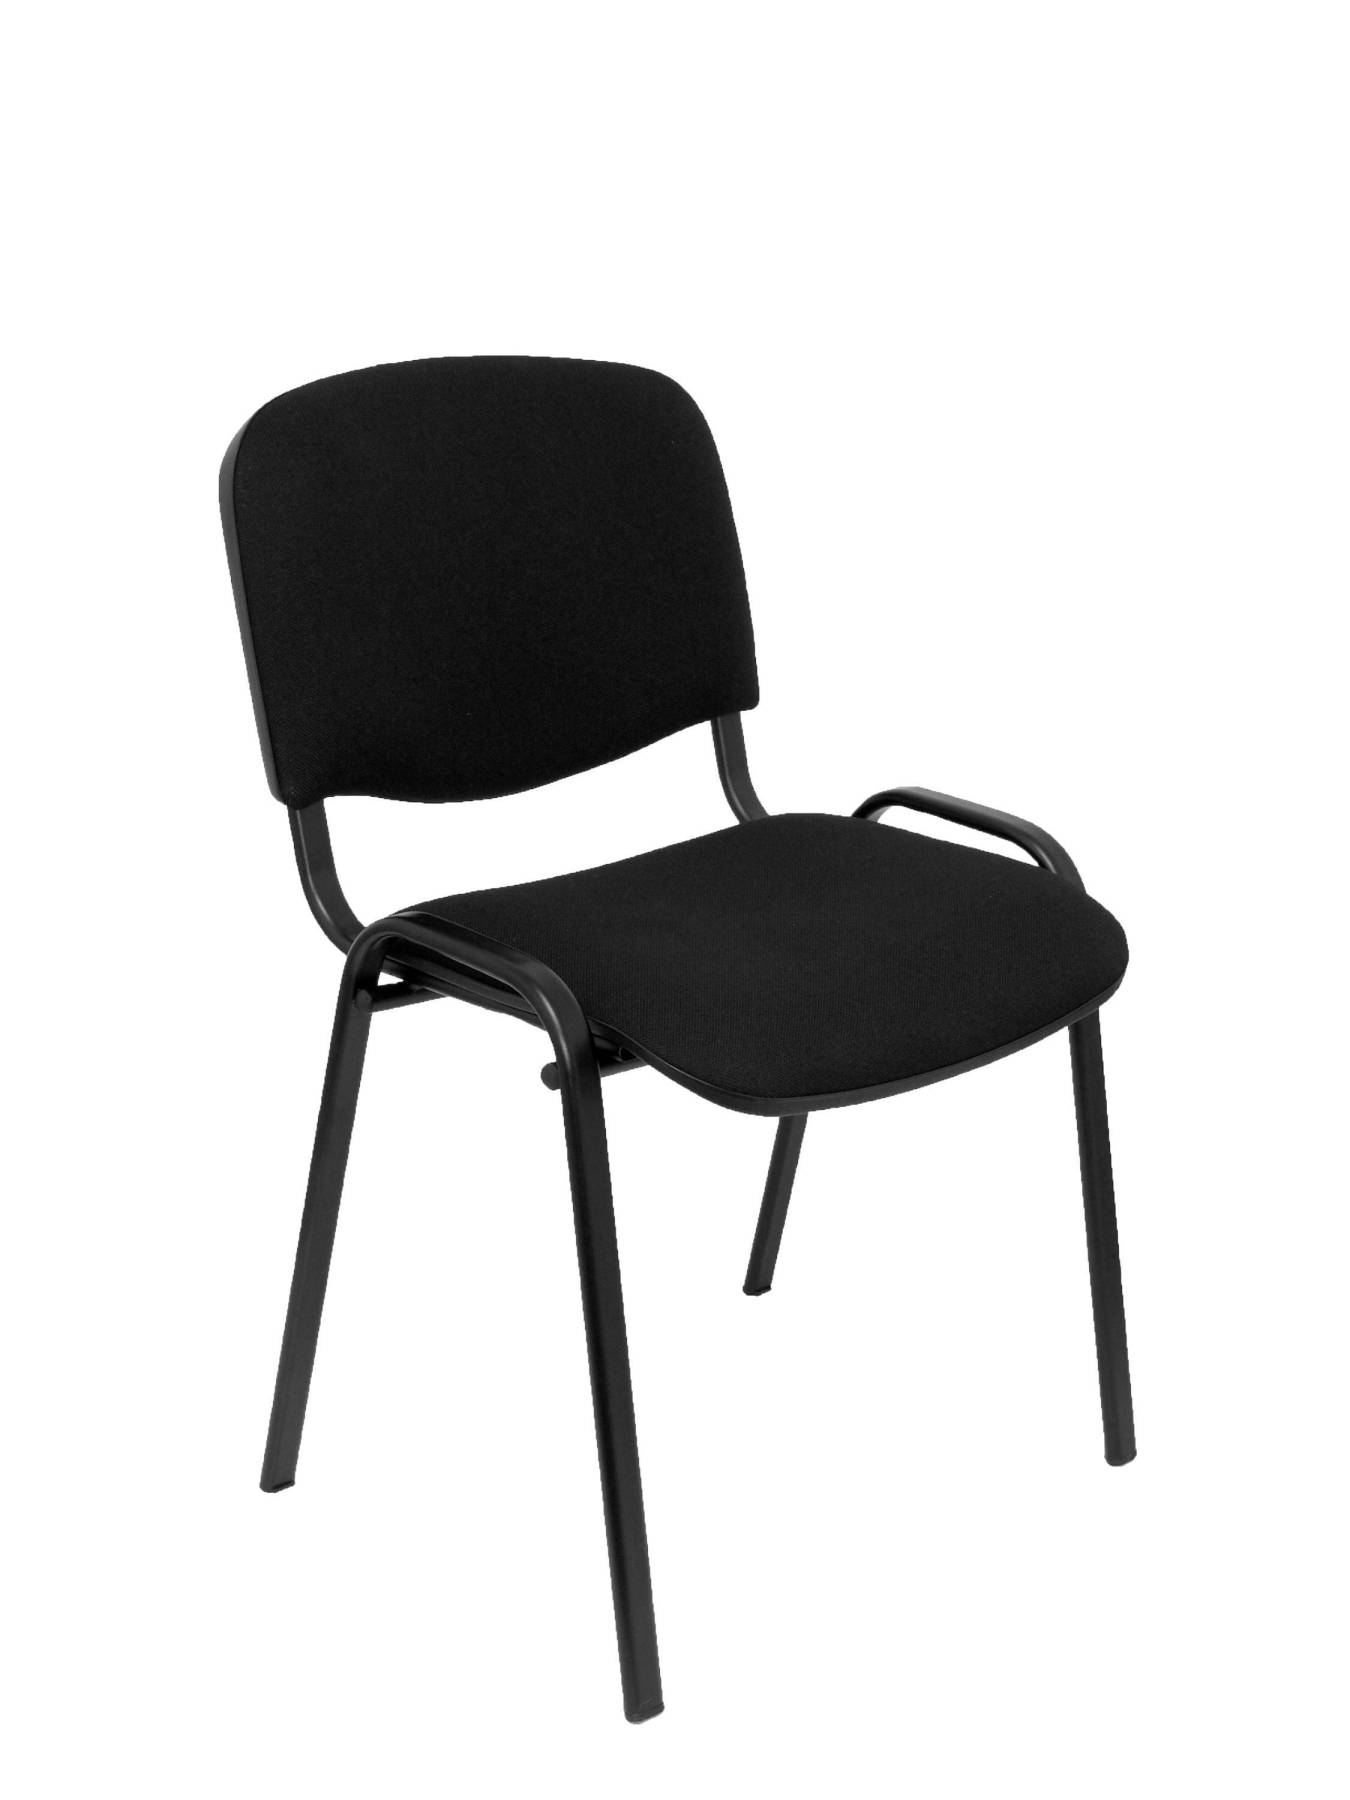 Confident Chair Ergonomic Multi-purpose And Structure In Black Color Seat And Back Upholstered In Fabric ARAN Color N